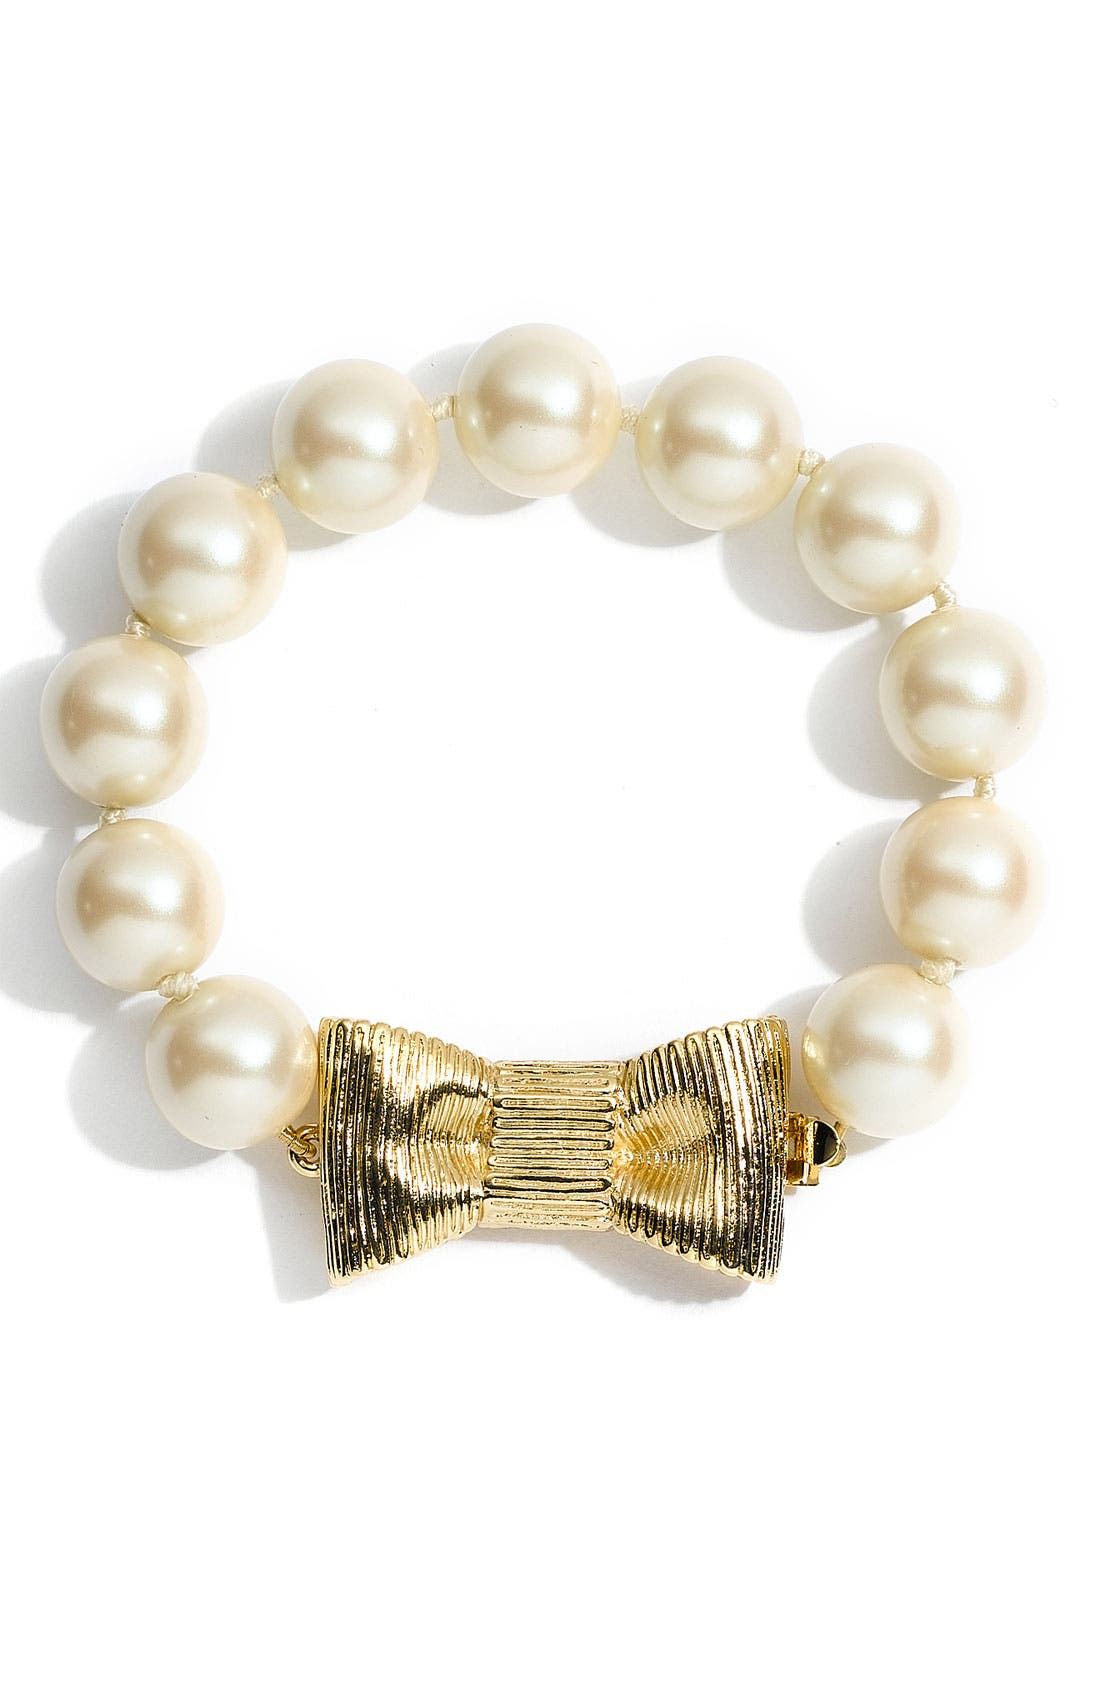 Main Image - kate spade new york 'all wrapped up' glass pearl bracelet